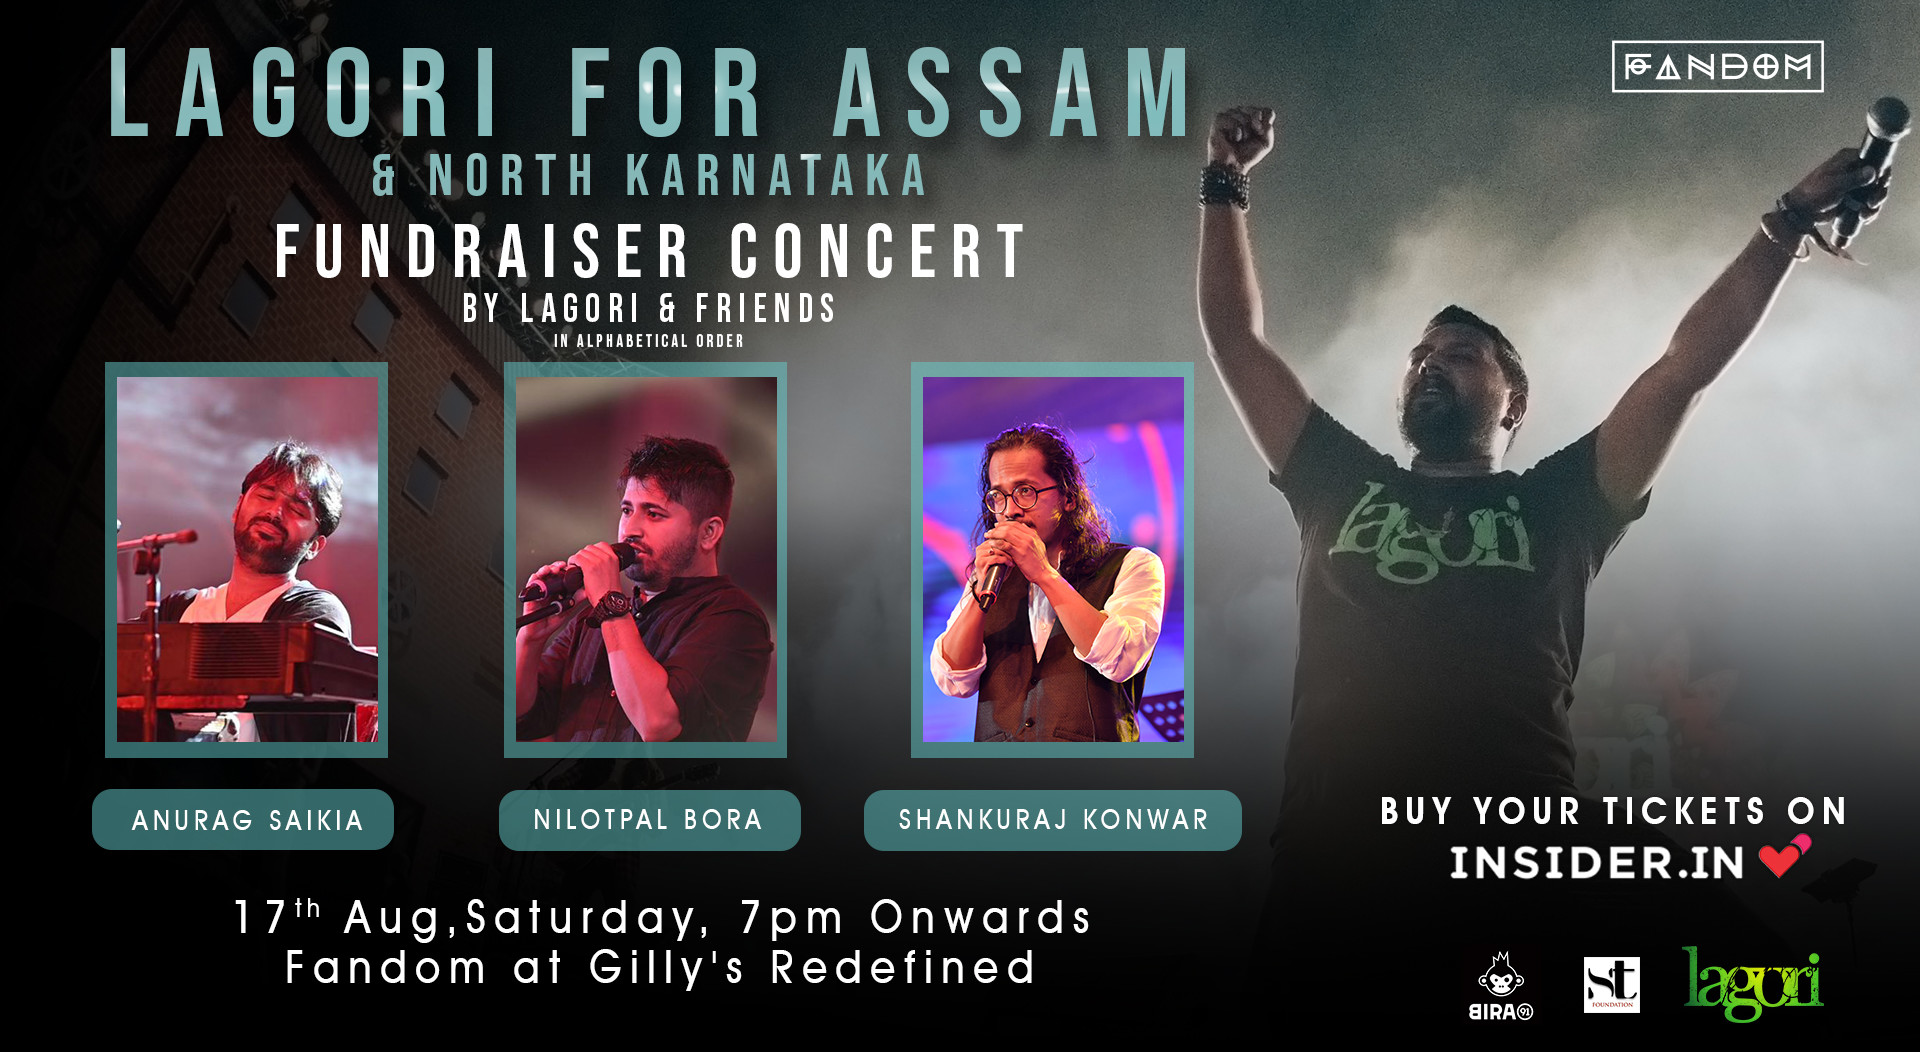 Book Lagori Friends For Assam And North Karnataka 17th August At